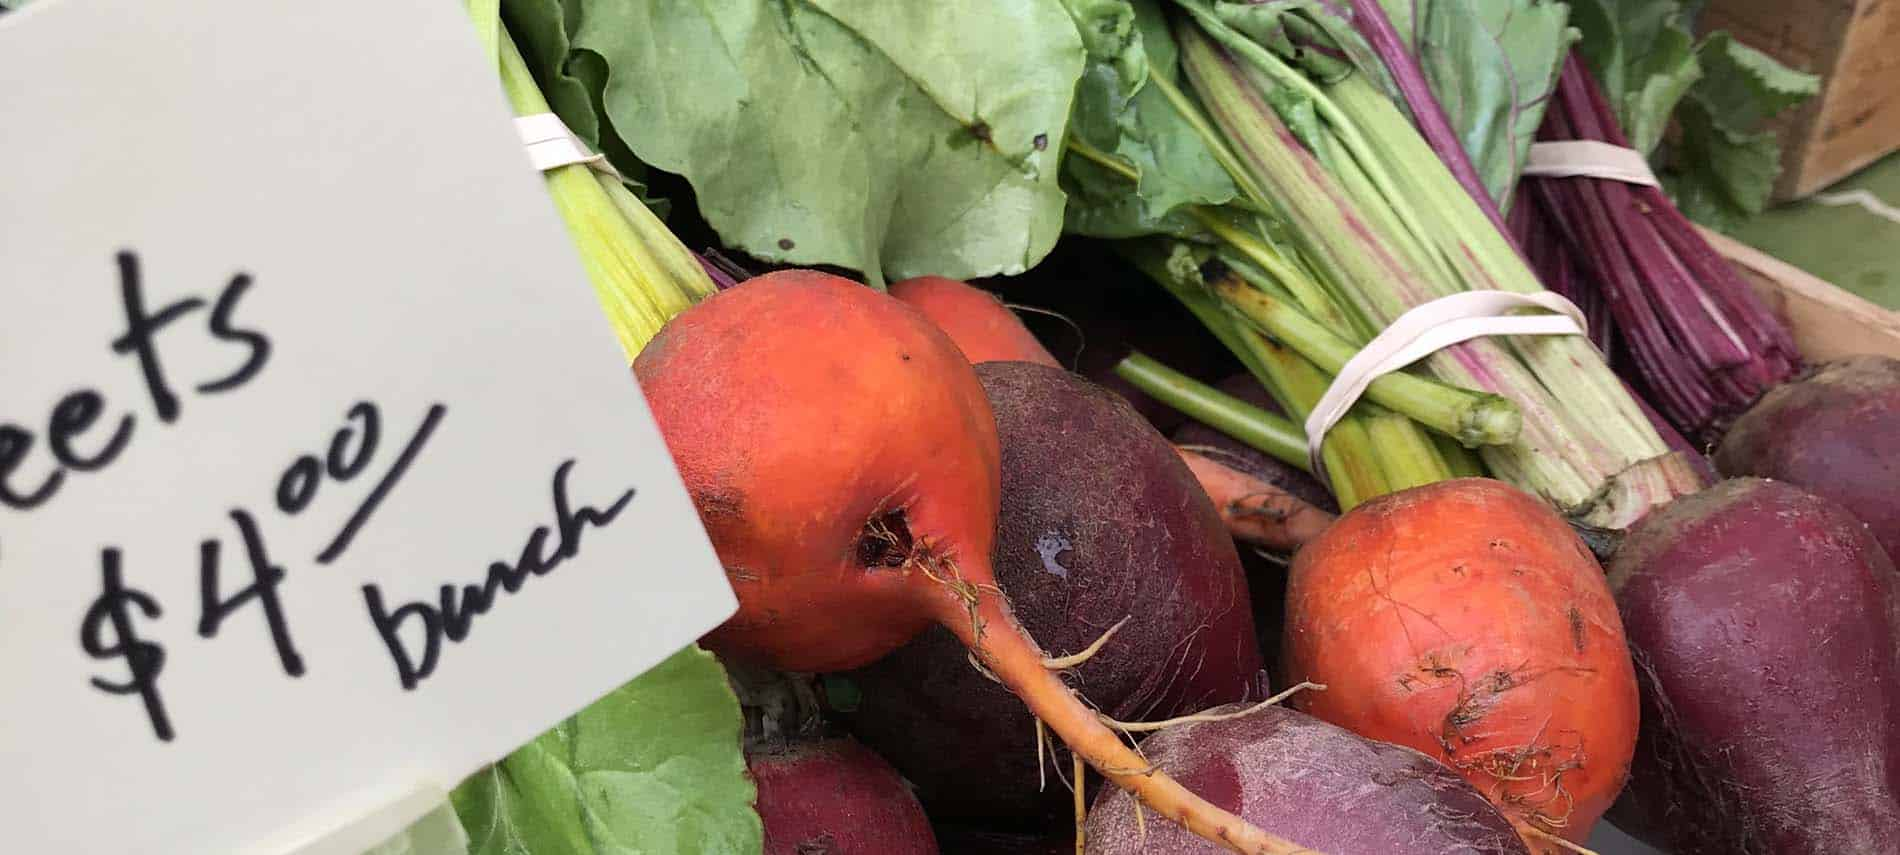 vermont farmers market upclose image beets for sale